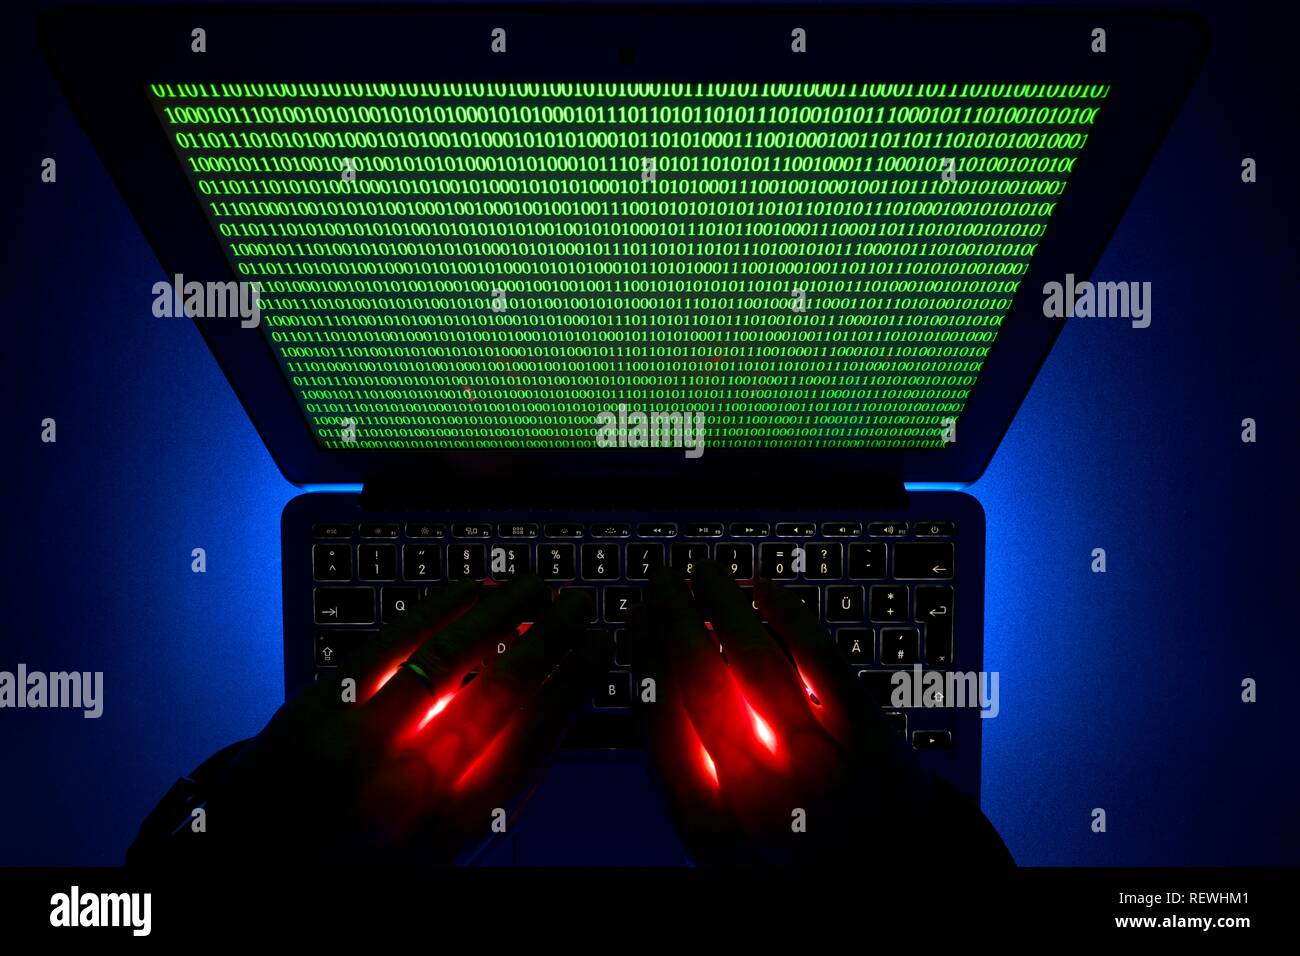 Hands on Computer Keyboard, Symbol Image Cybercrime, Computer Crime, Privacy, Baden-Württemberg, Germany - Stock Image